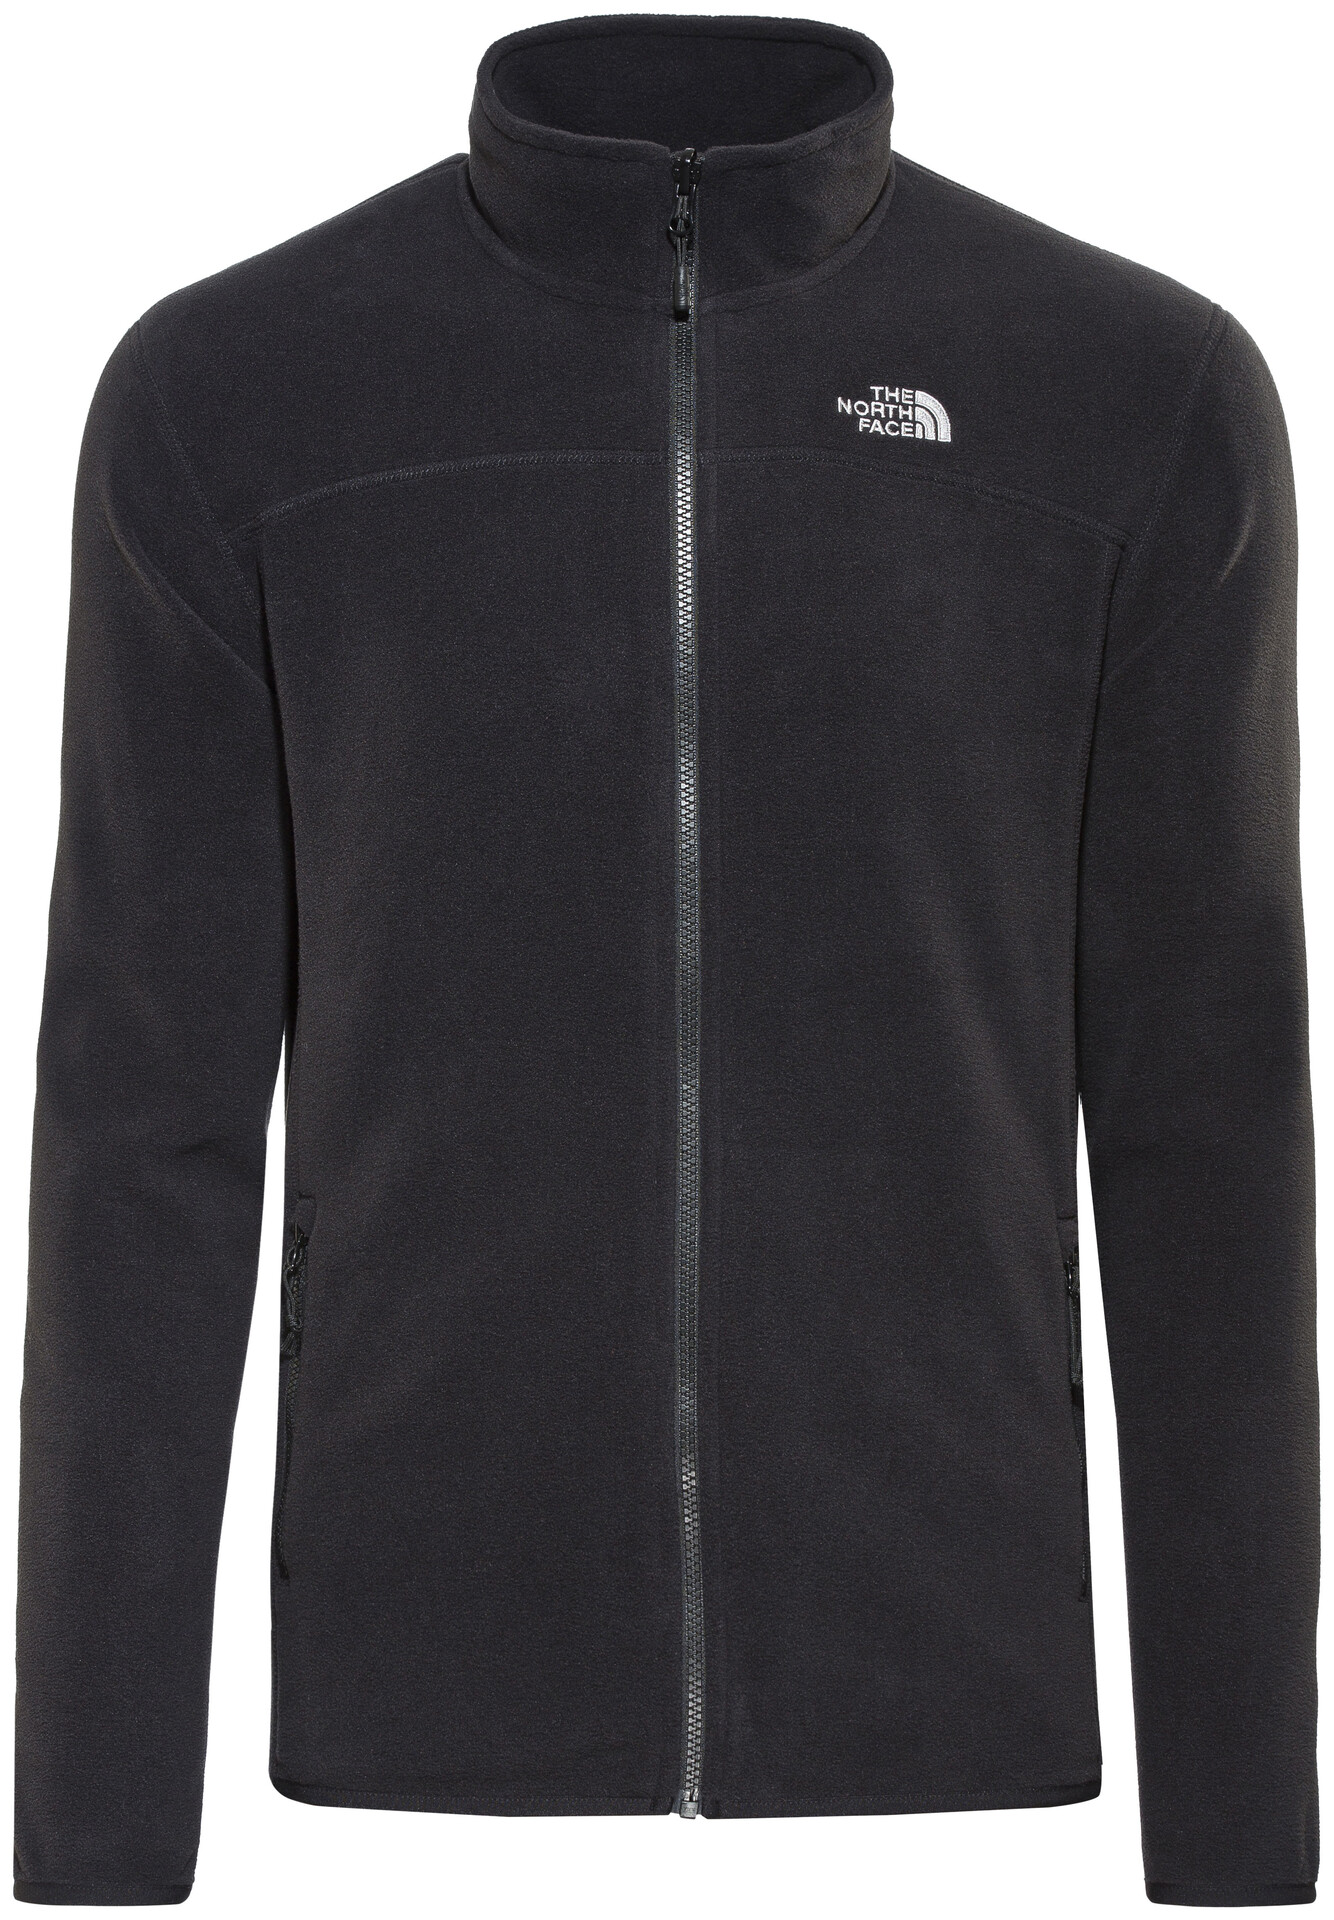 The North Face 100 Glacier Veste polaire